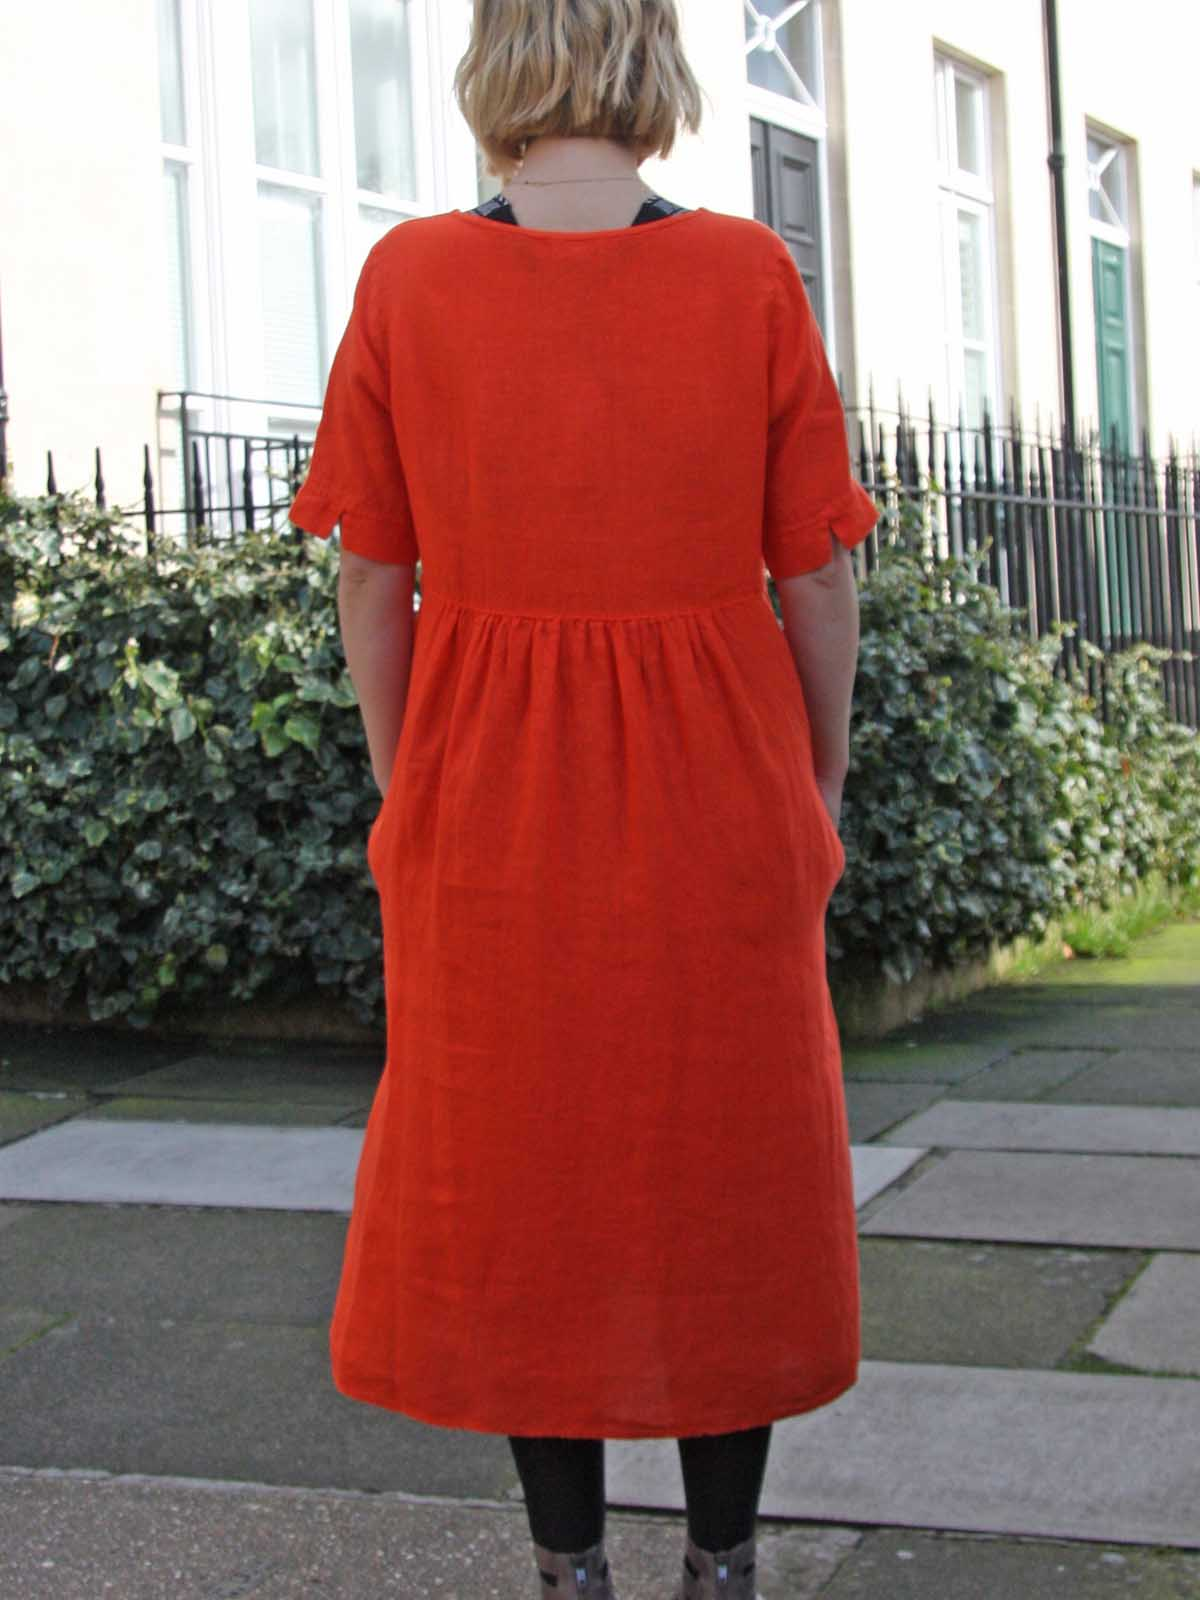 Yellow Label Linen Dress in Orange or Pink, Dresses, Yellow Label, Blue Women - Blue Women's Clothing